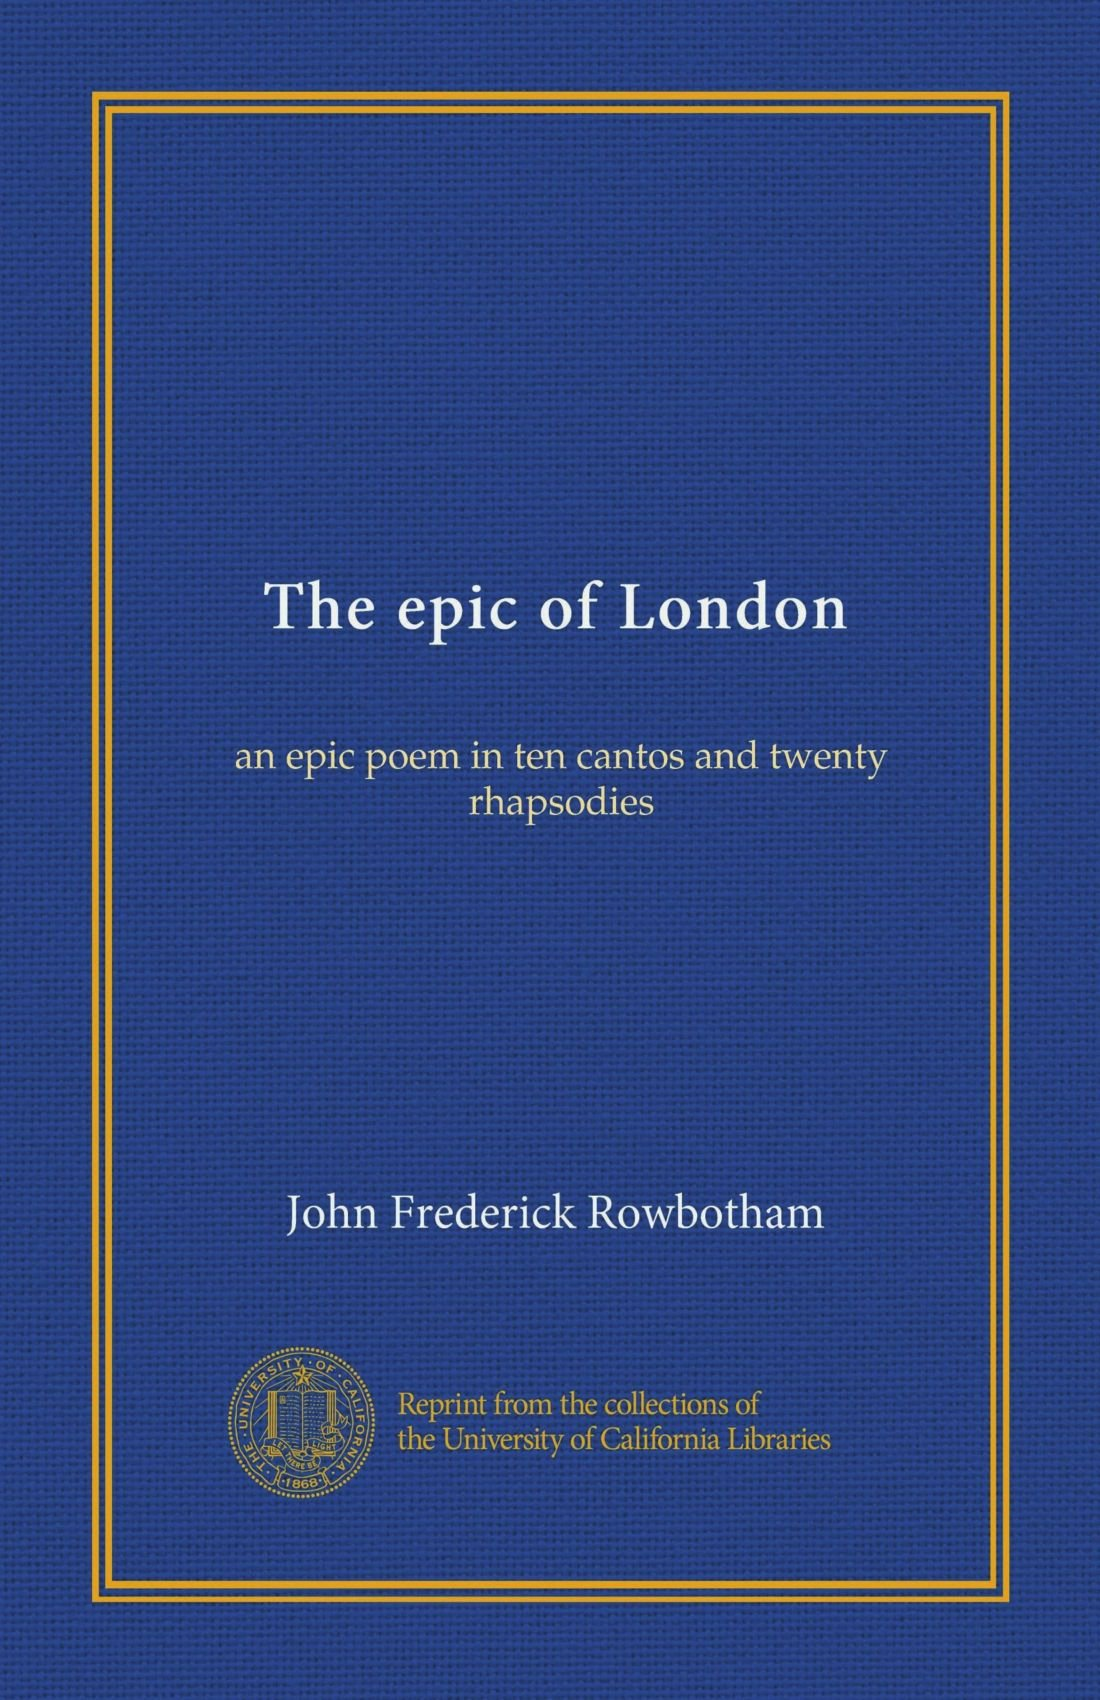 Download The epic of London (Vol-1): an epic poem in ten cantos and twenty rhapsodies PDF